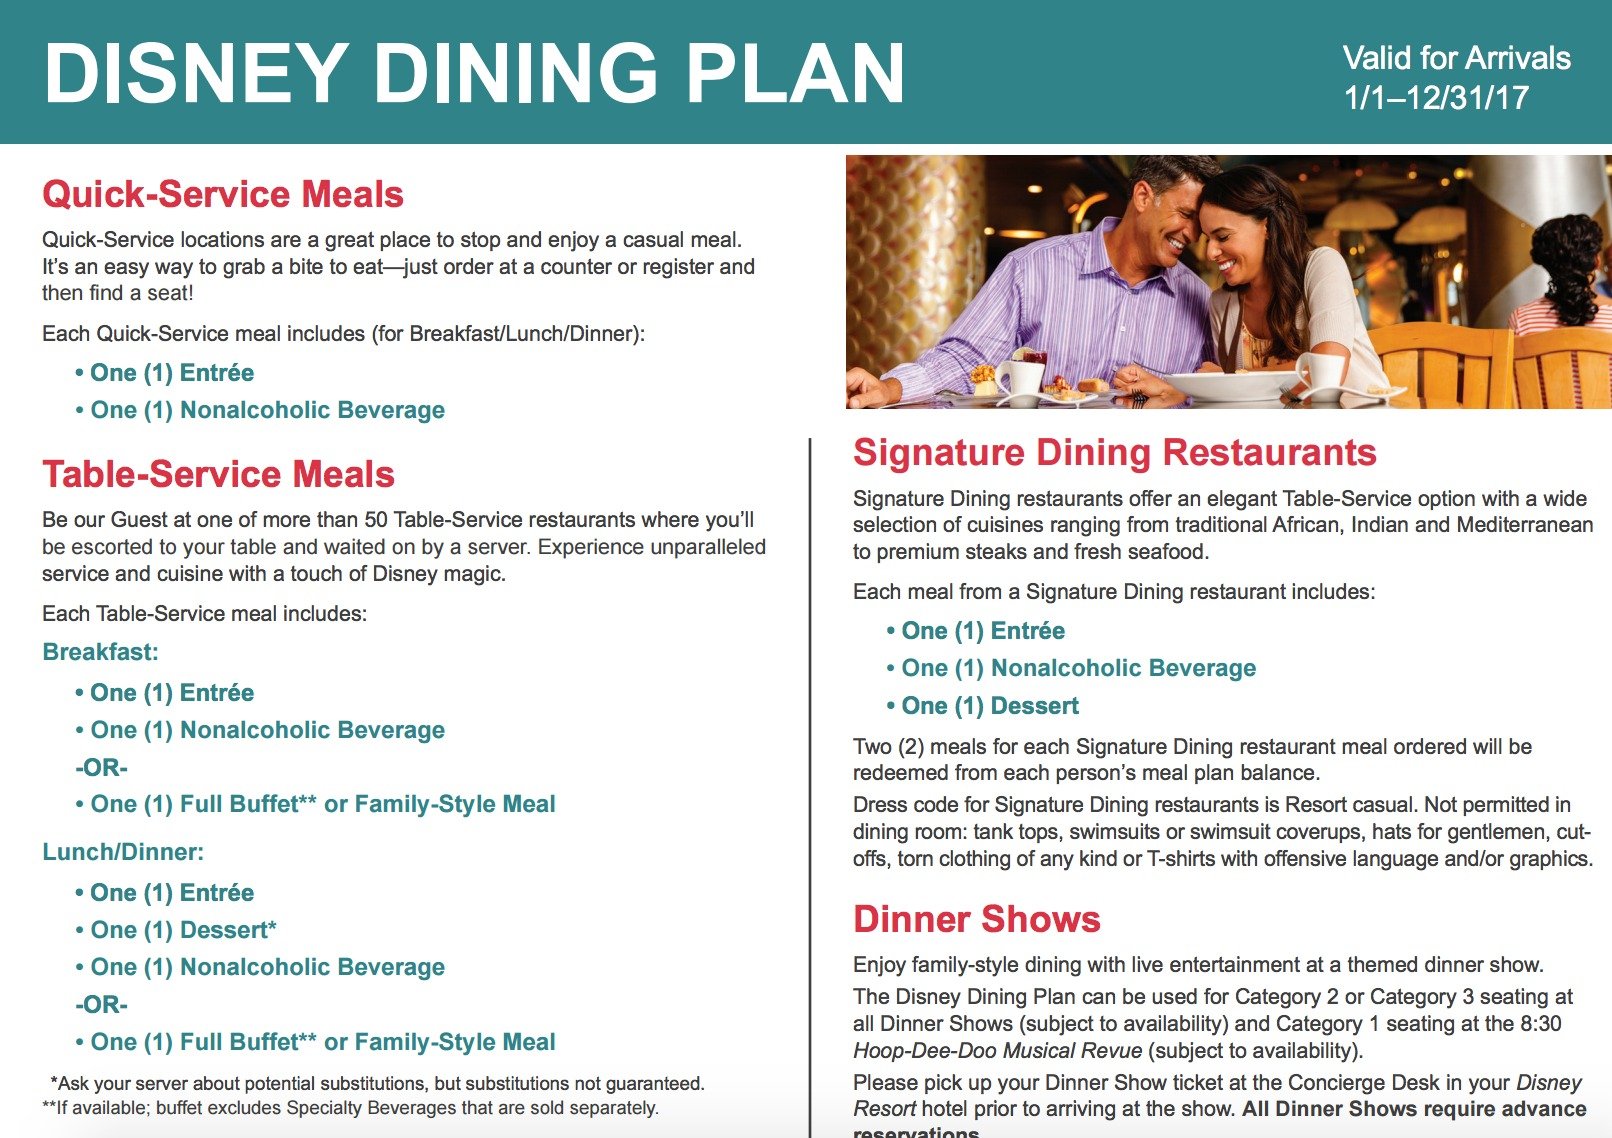 Disney dining plans are unavailable for Guests under the age of 3, but they may share from an adult plate at no extra charge, or an additional meal may be purchased from the menu. The price of the meal will be added to your bill. Disney dining plan locations are subject to change without notice or liability.